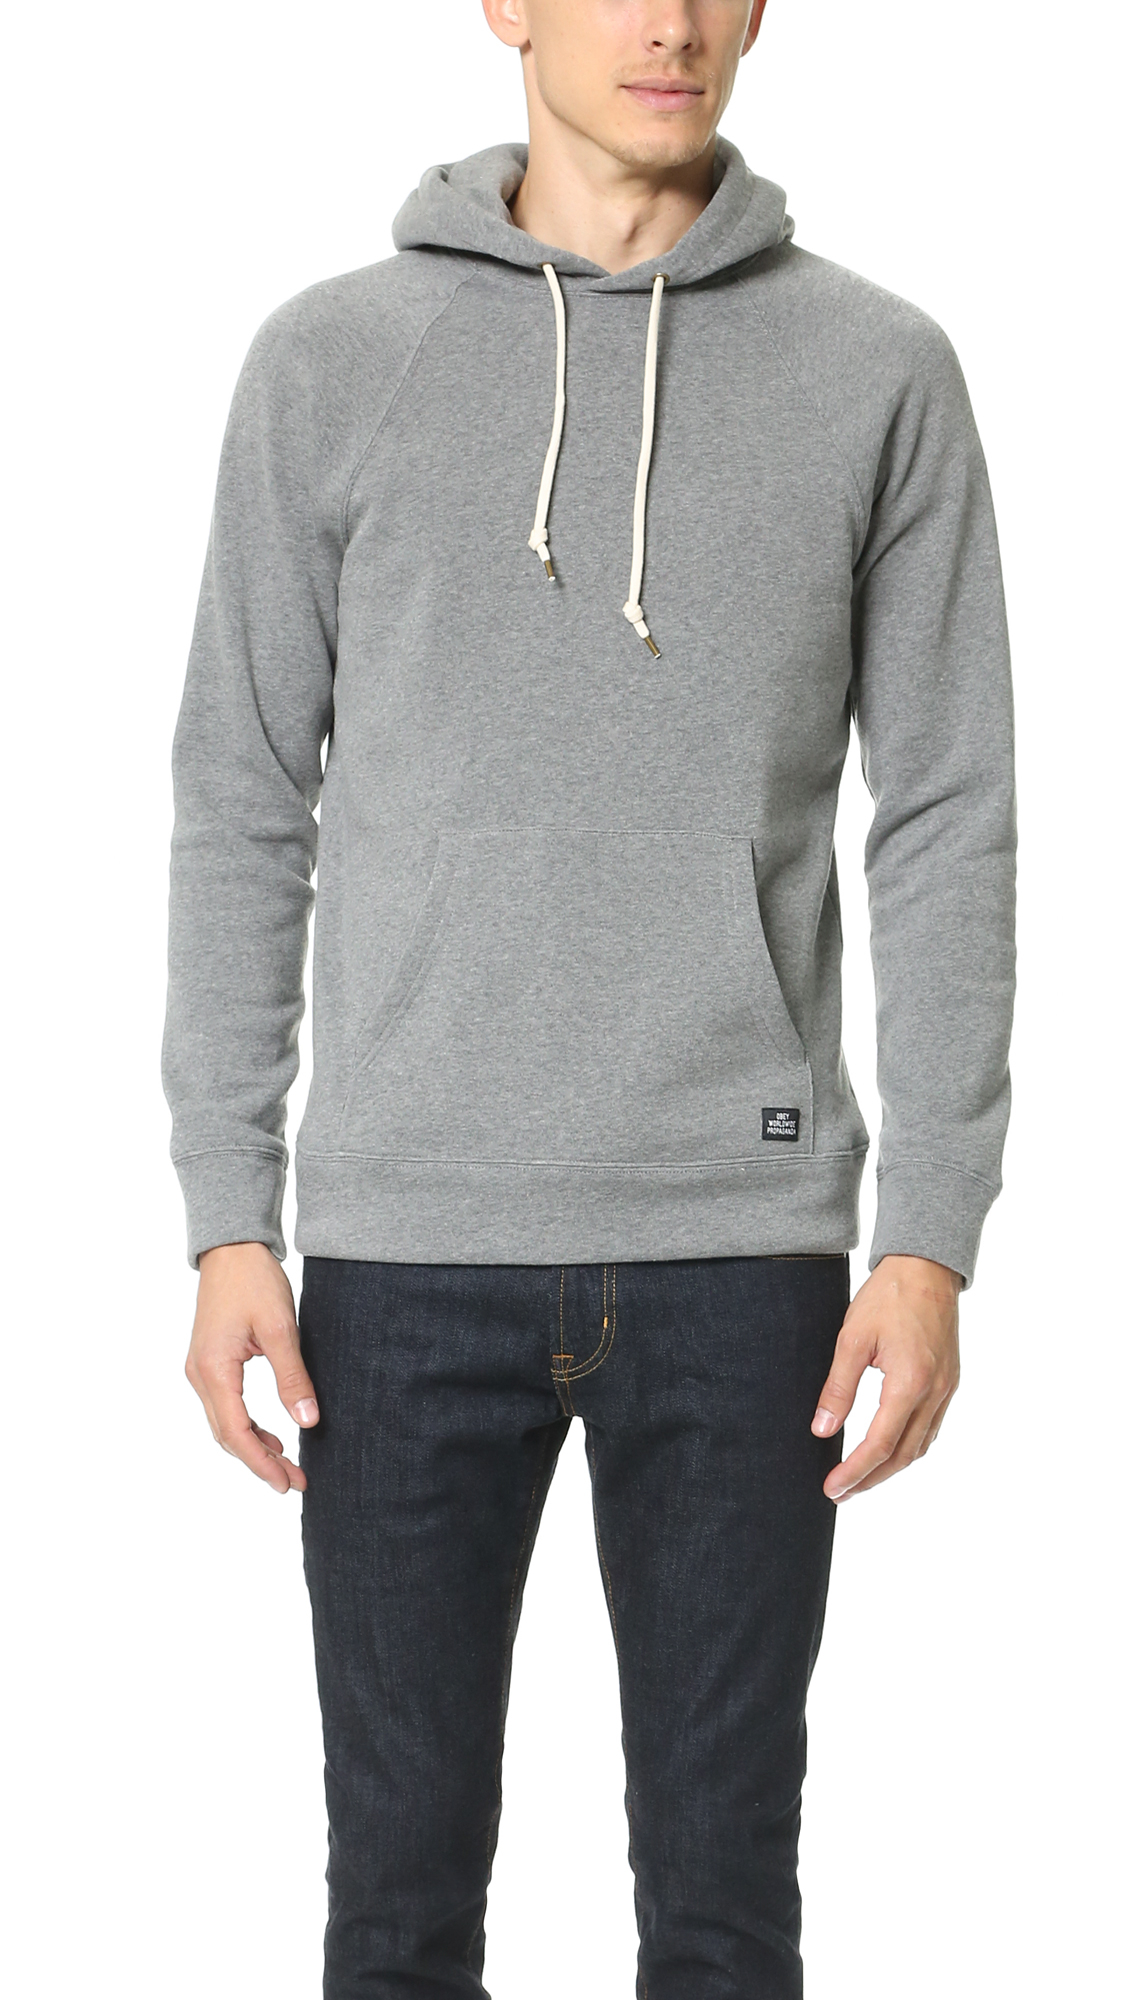 obey lofty creature comforts pullover hoodie in gray for men heather grey. Black Bedroom Furniture Sets. Home Design Ideas